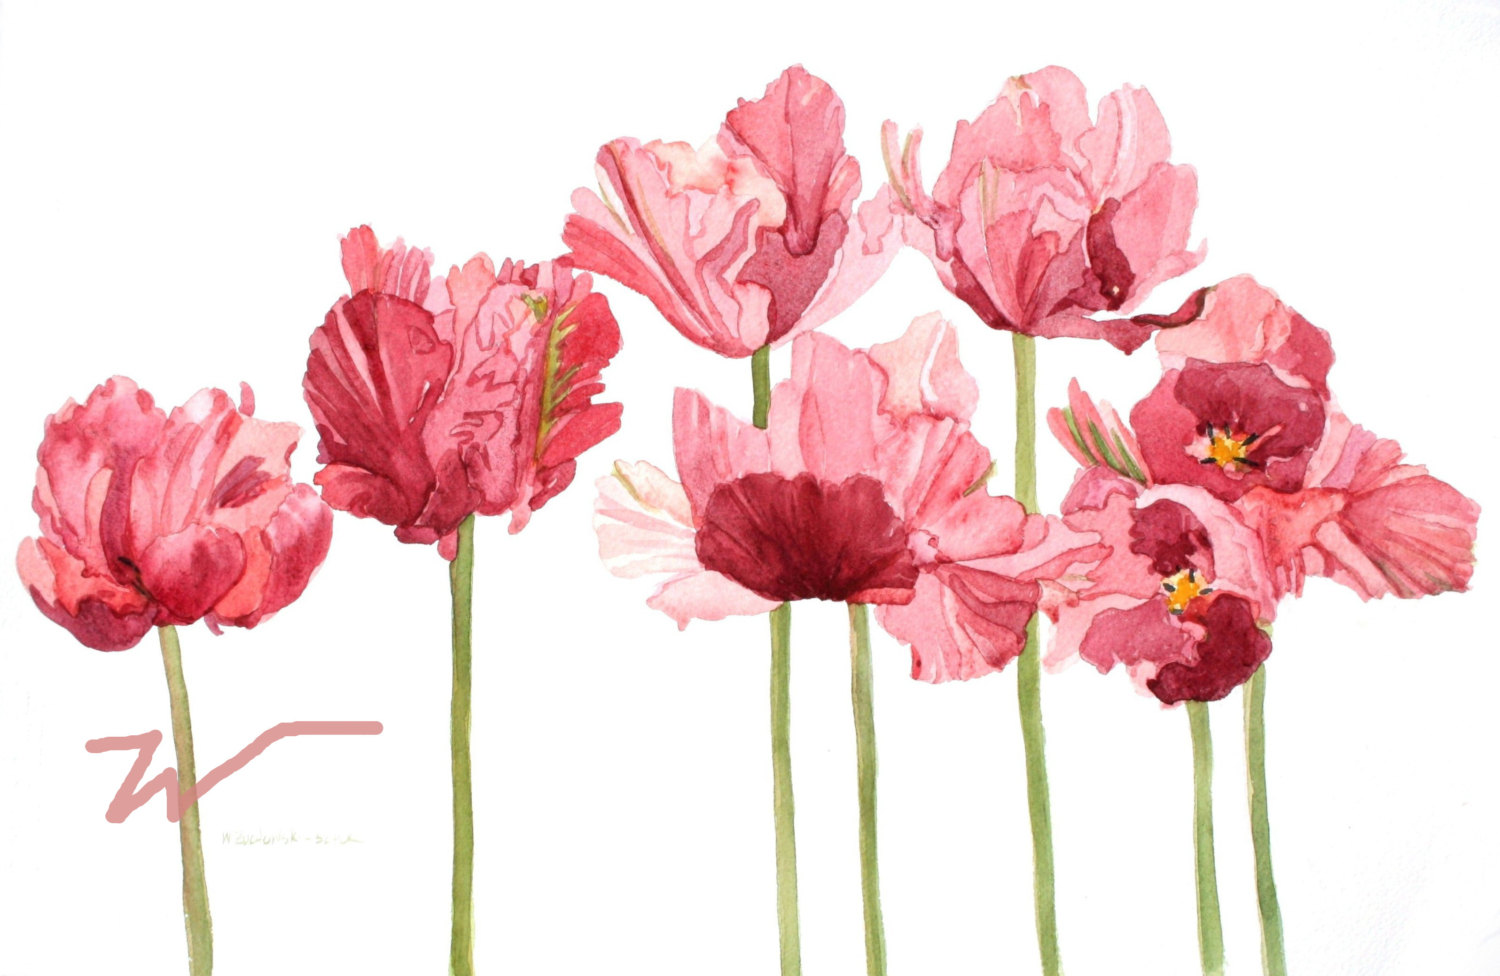 Flower Drawing Tumblr Transparent At Getdrawings Com Free For